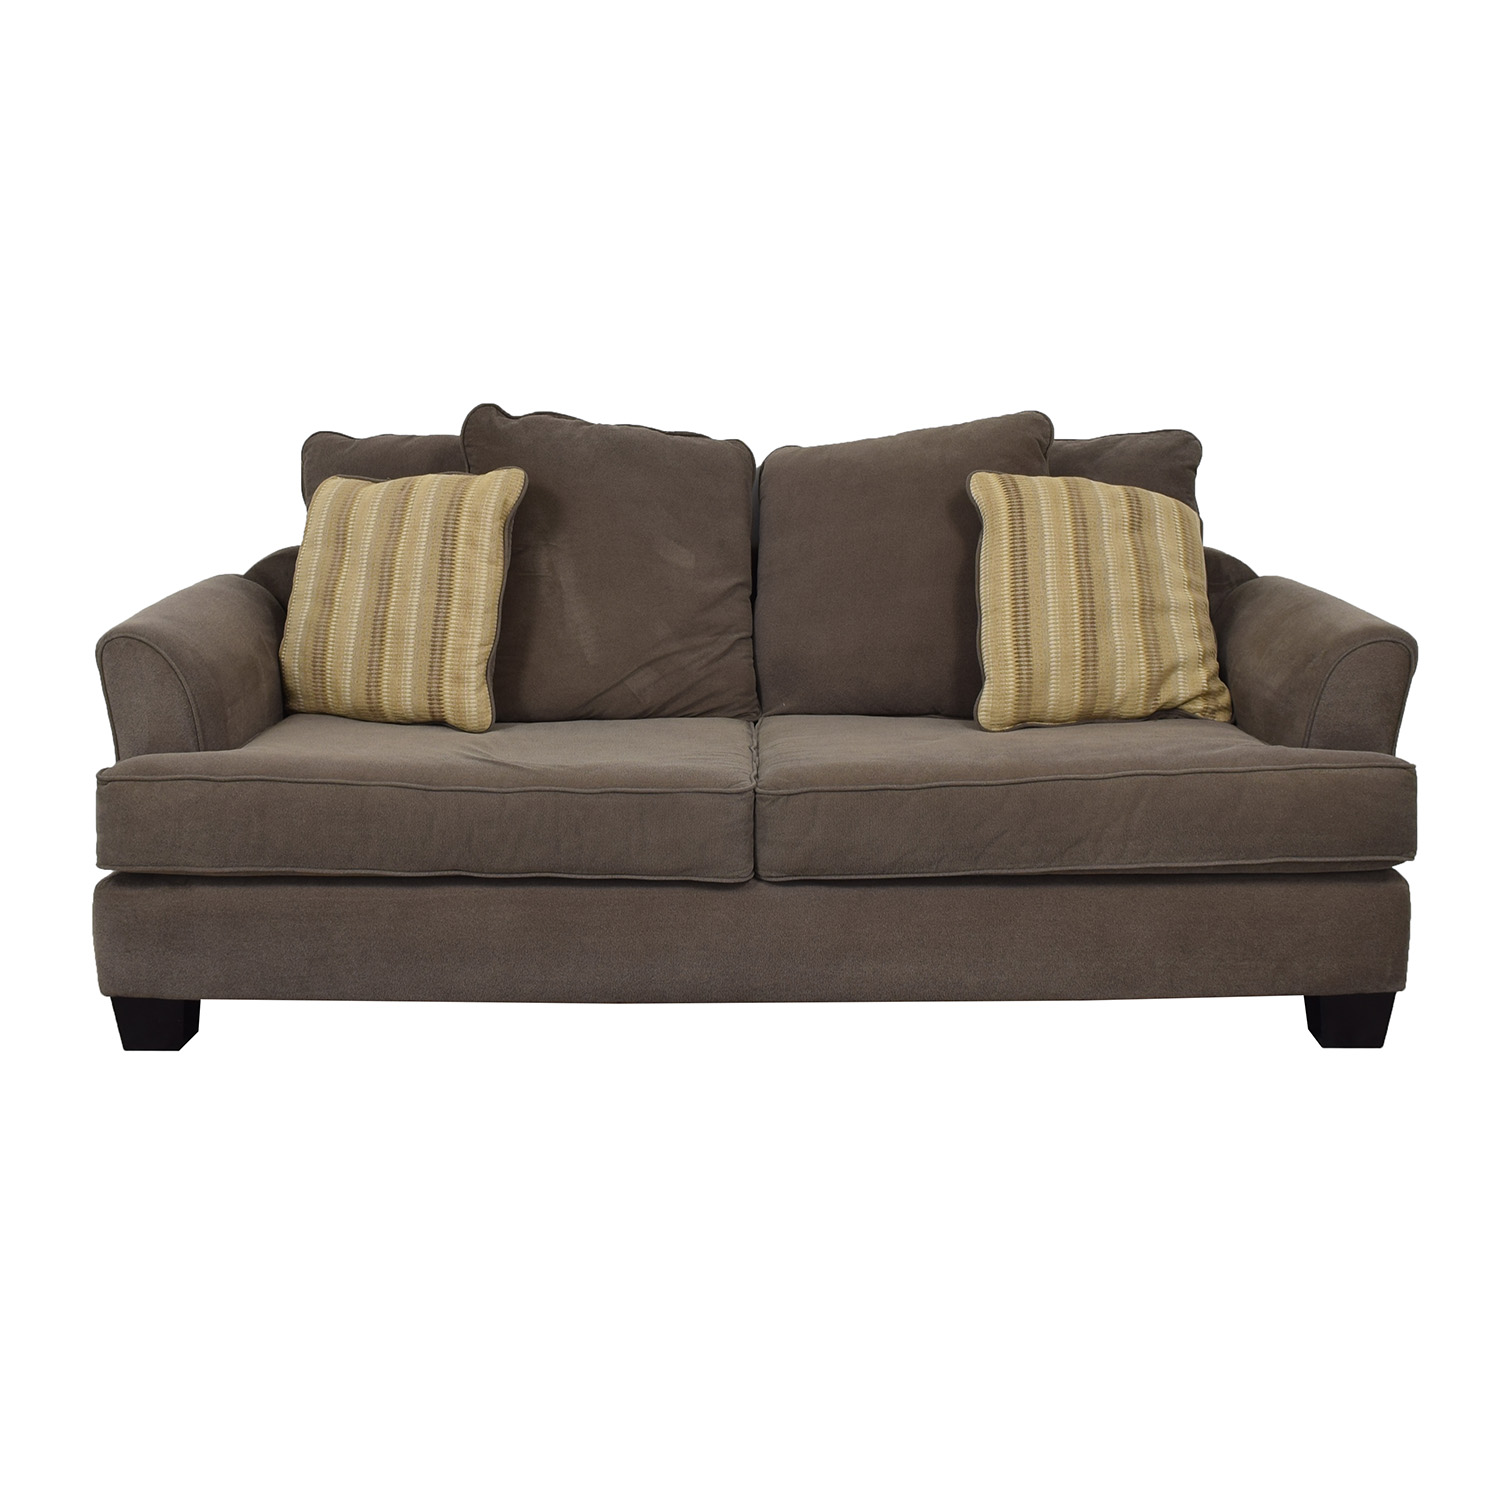 buy Raymour & Flanigan Kathy Ireland Brown Two-Cushion Sofa Raymour & Flanigan Sofas